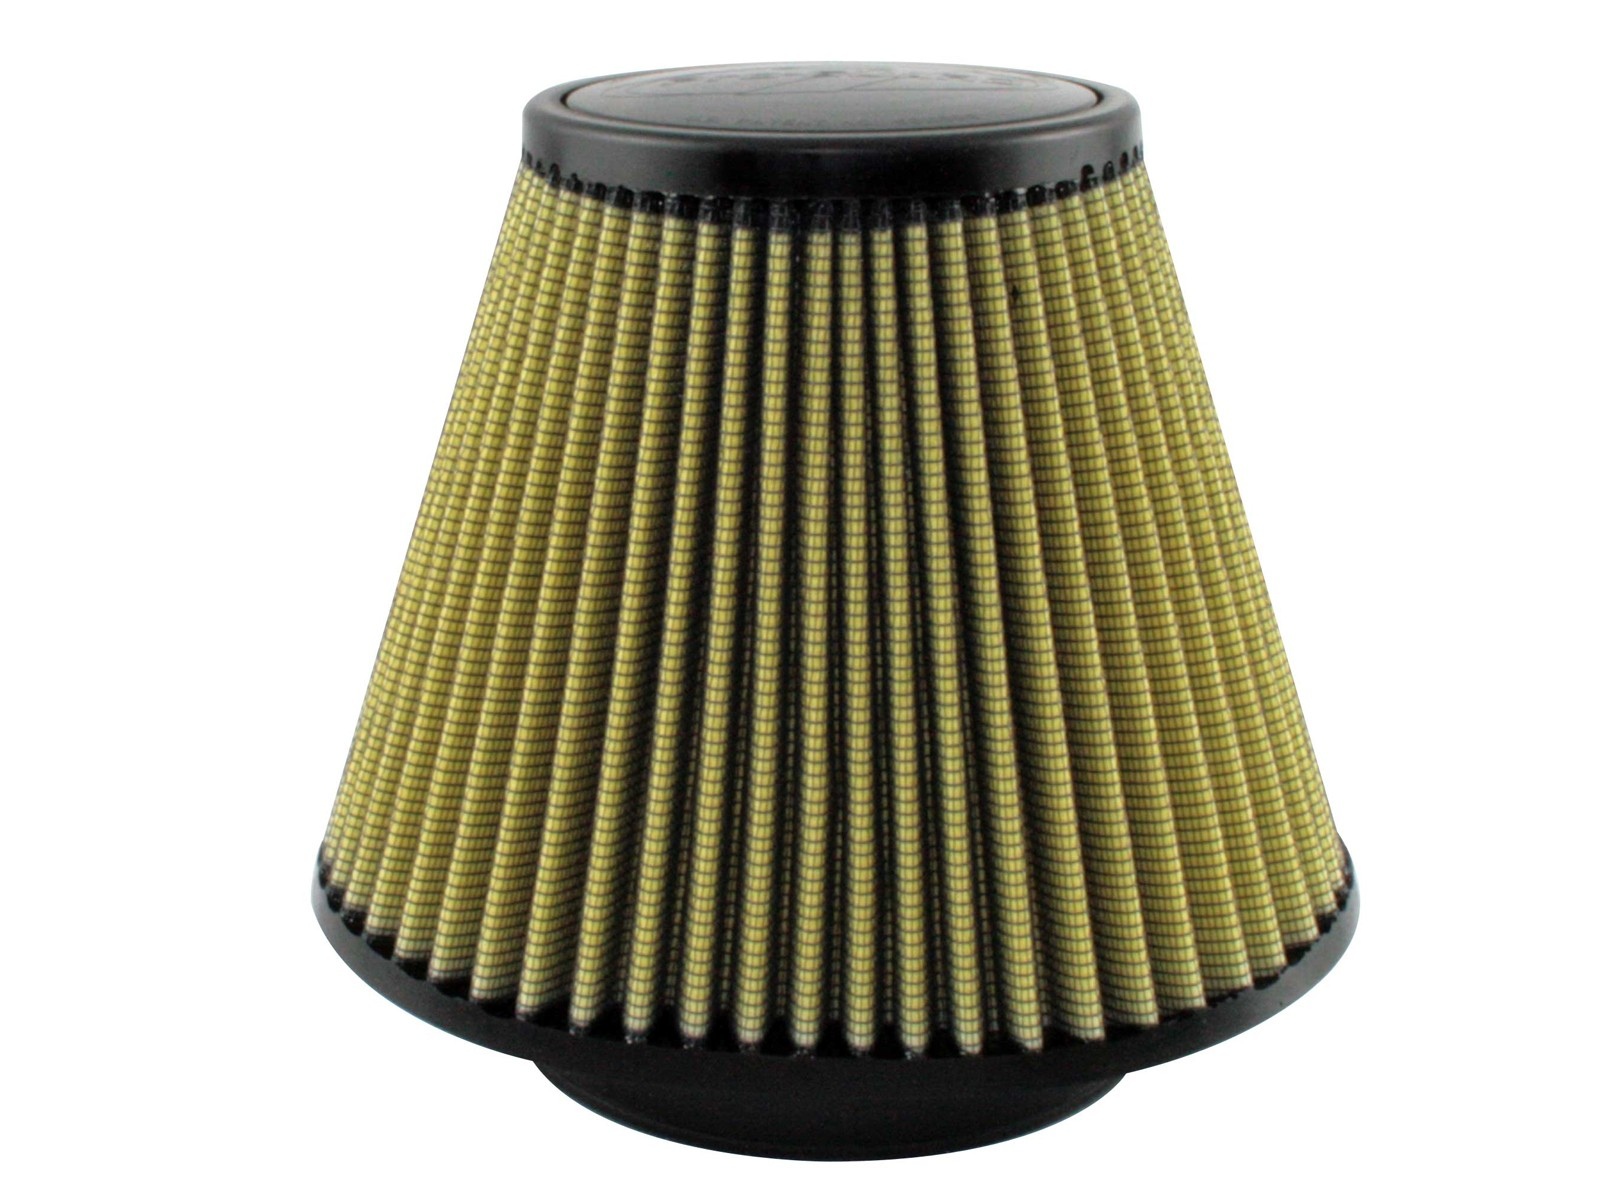 aFe POWER 72-90032 Magnum FLOW Pro GUARD7 Air Filter